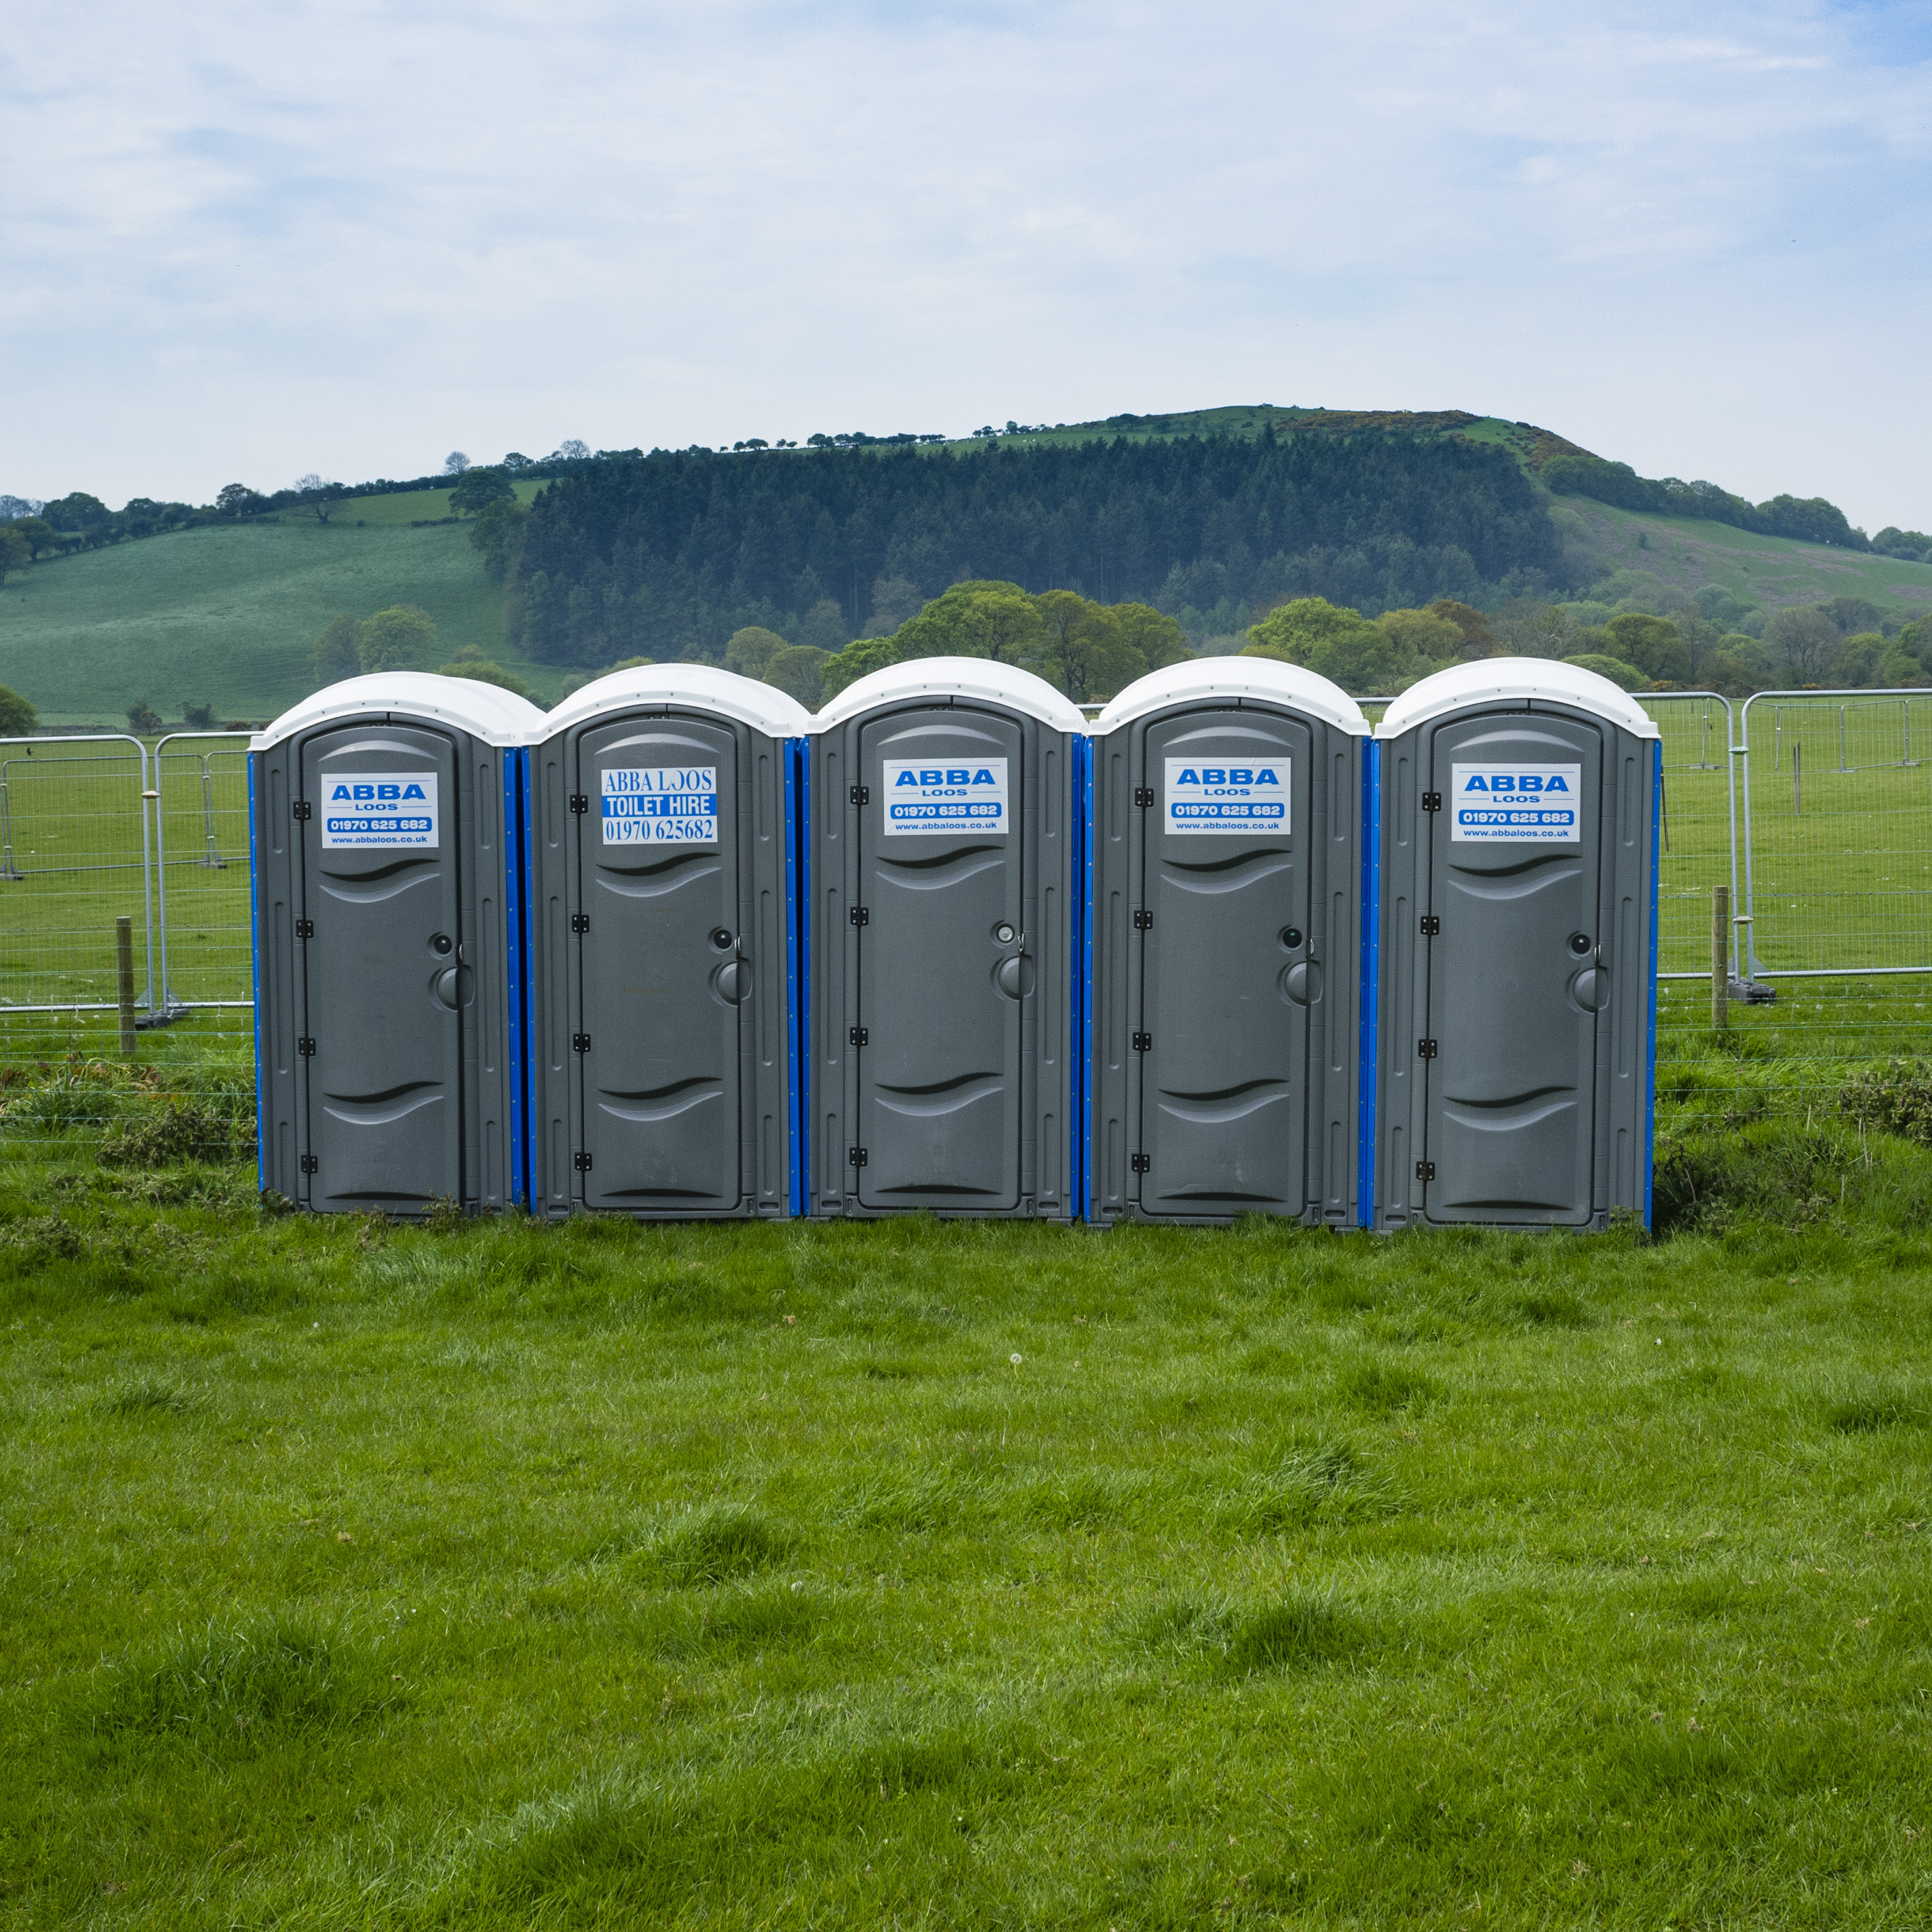 A row of 5 five portable toilets at a festival, UK